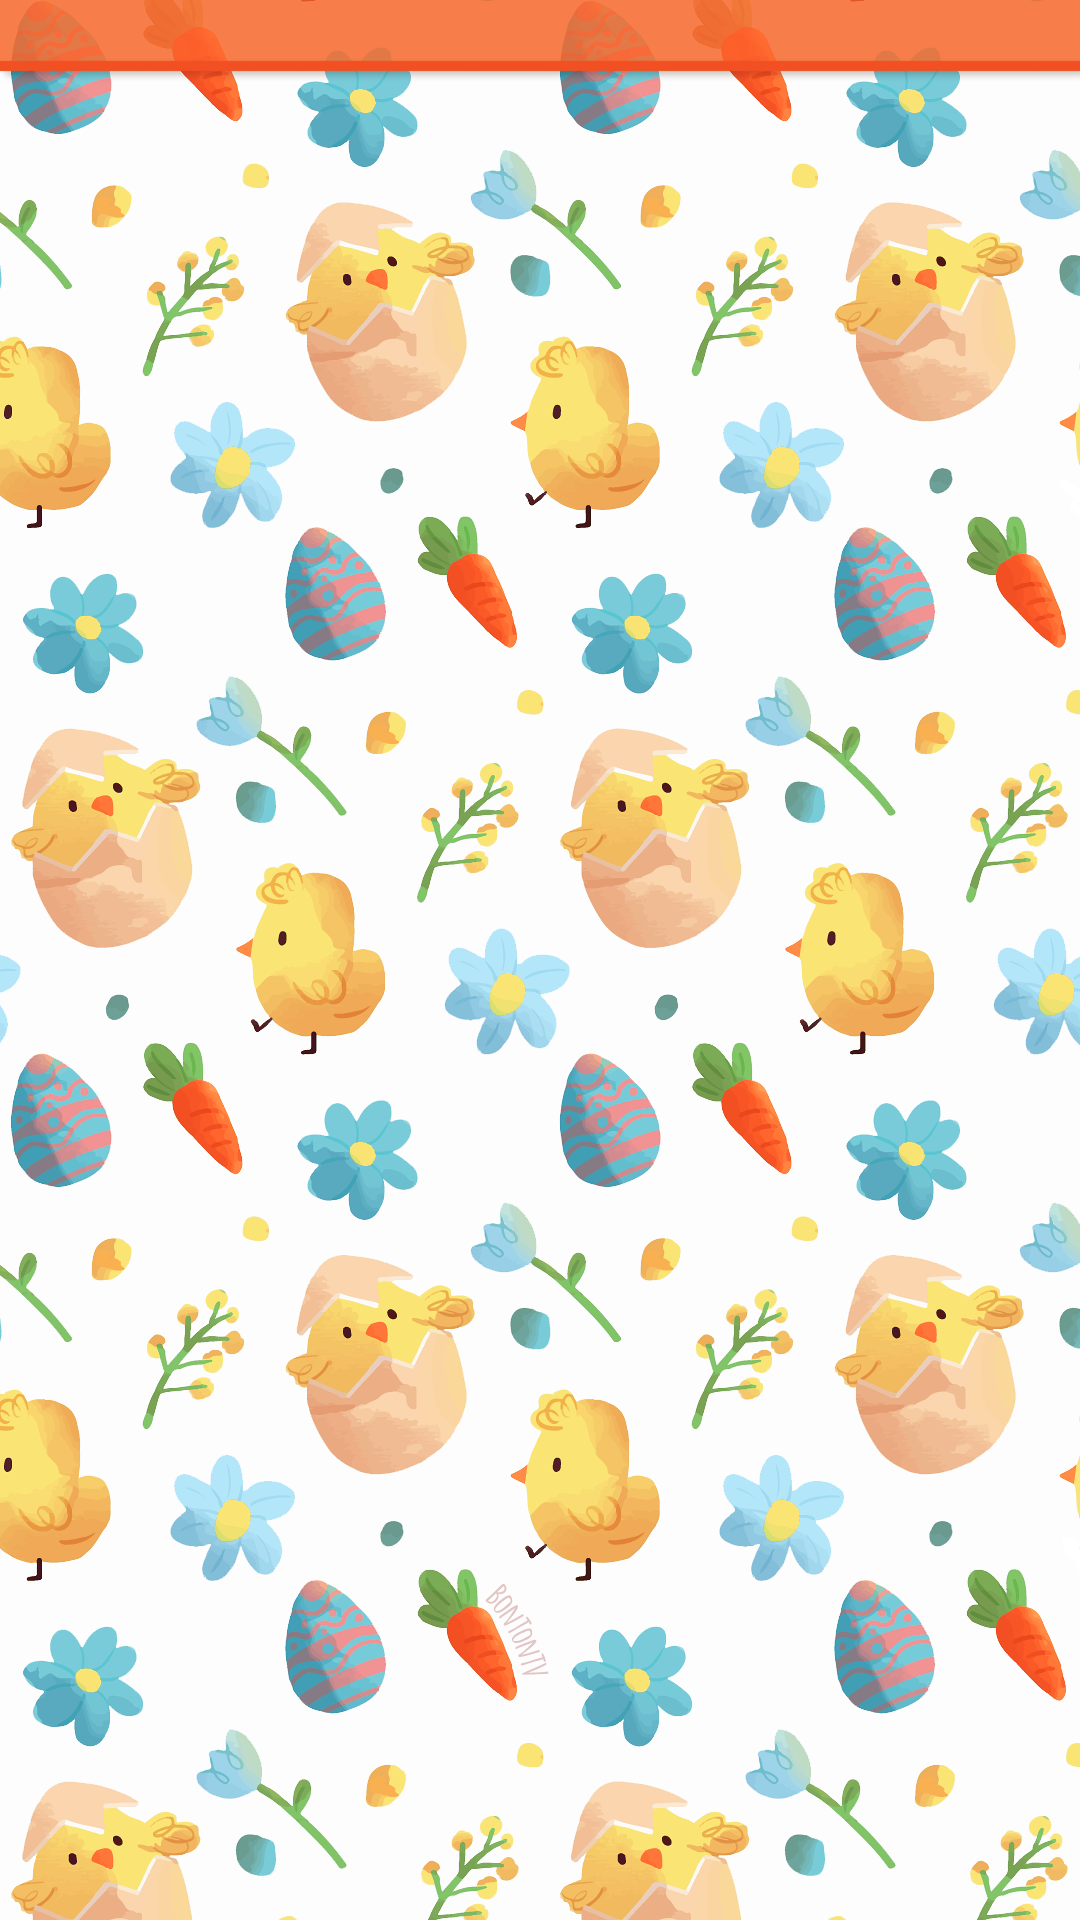 Hd Easter Phone Wallpapers By Bonton Tv Free Backgrounds 1080x1920 Wallpapers Iphone Smartpho Iphone Wallpaper Easter Easter Wallpaper Easter Backgrounds